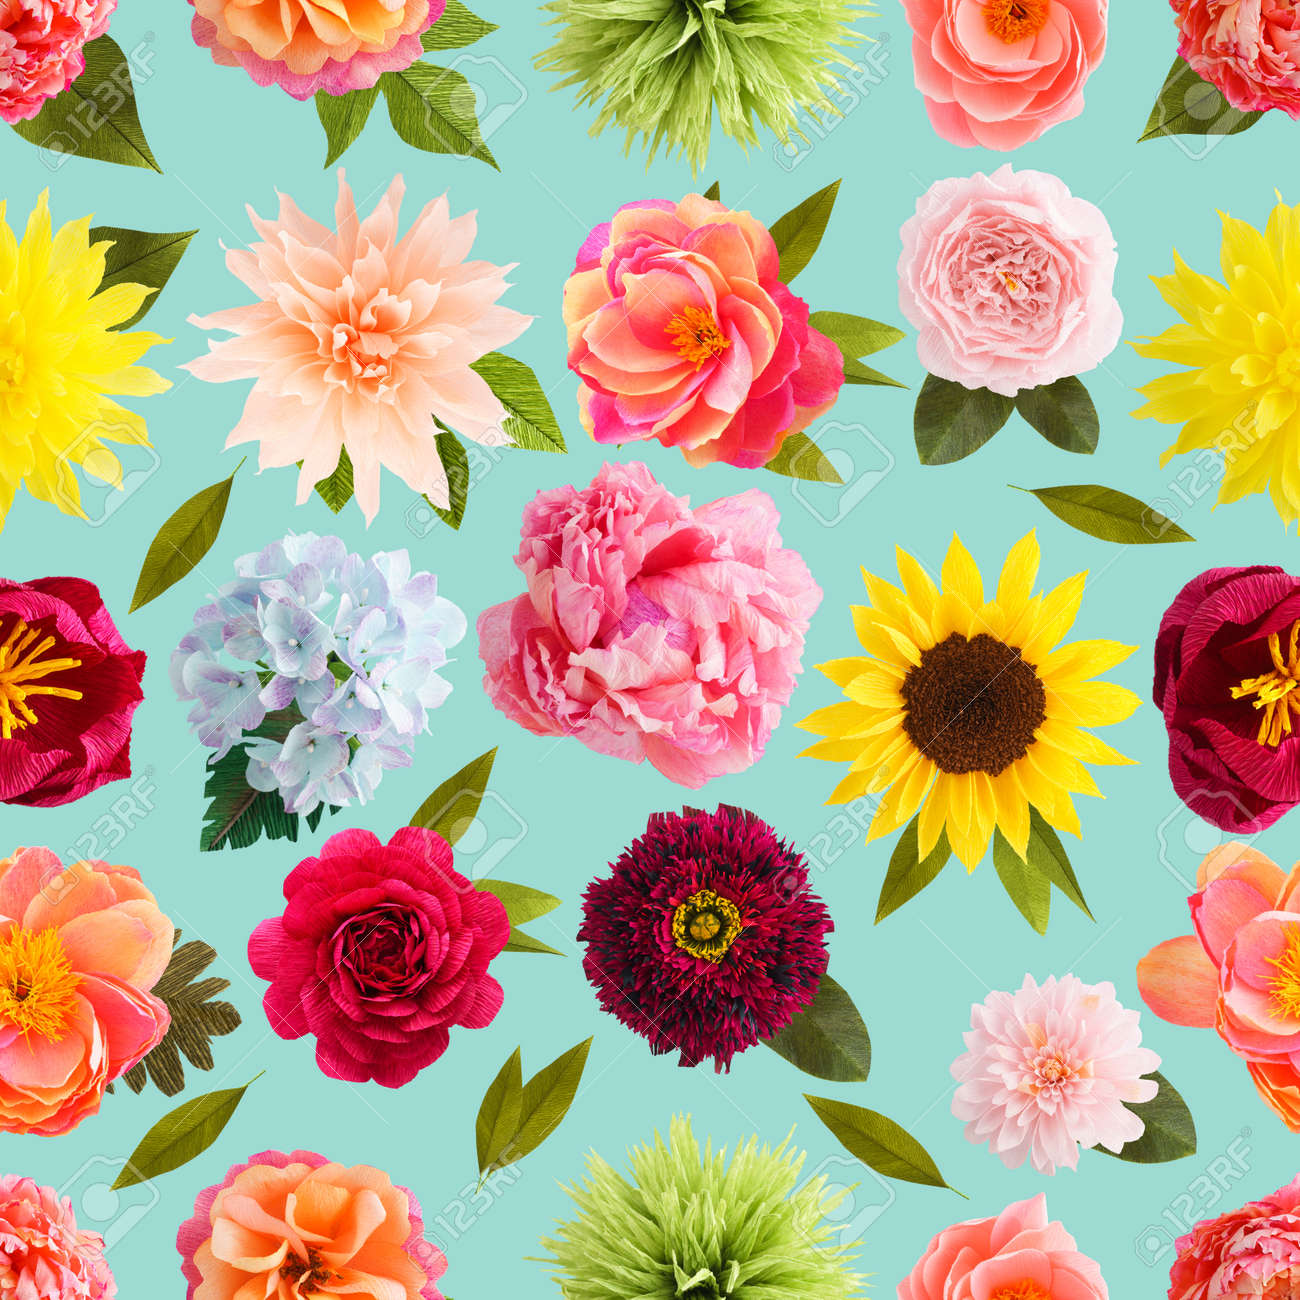 Seamless Pattern With Handmade Crepe Paper Flowers On Turquoise